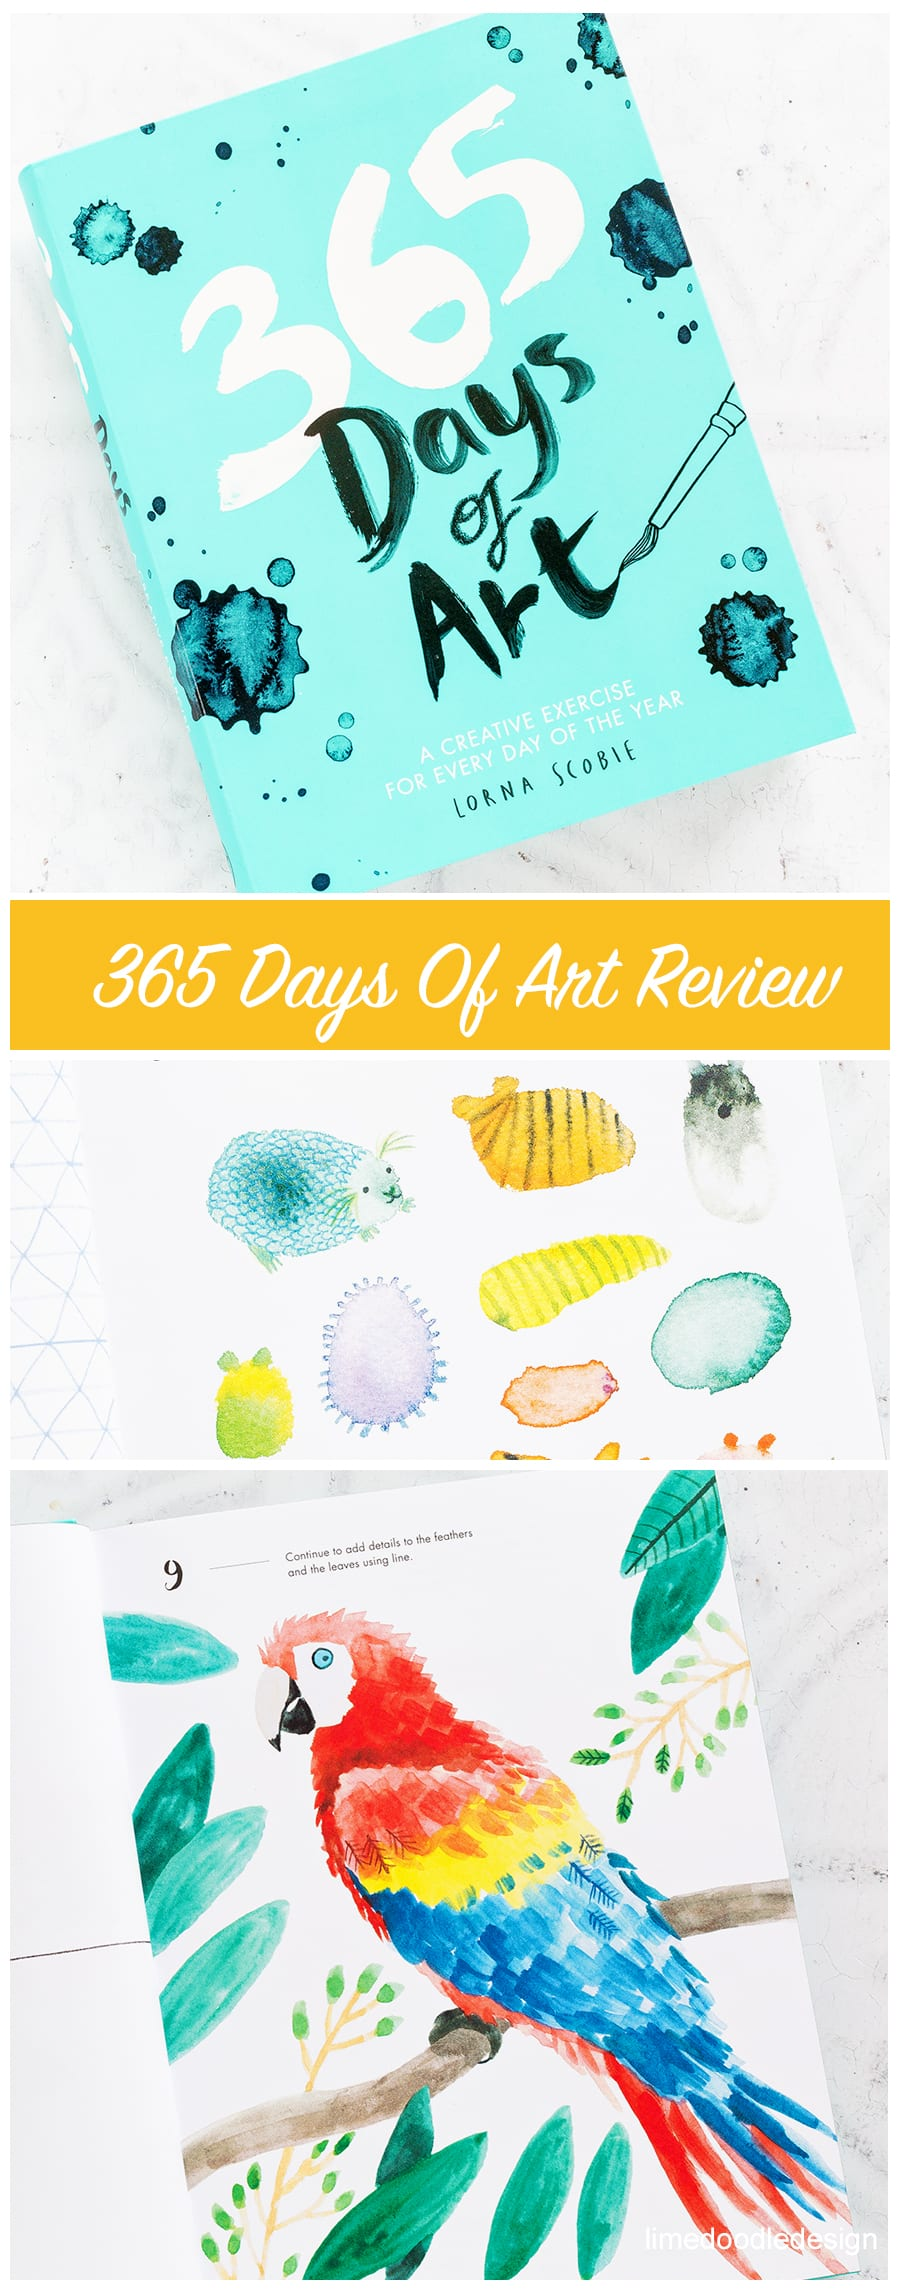 A book review of 365 Days Of Art by Lorna Scobie. Find out more here https://limedoodledesign.com/2018/02/book-review-365-days-of-art/